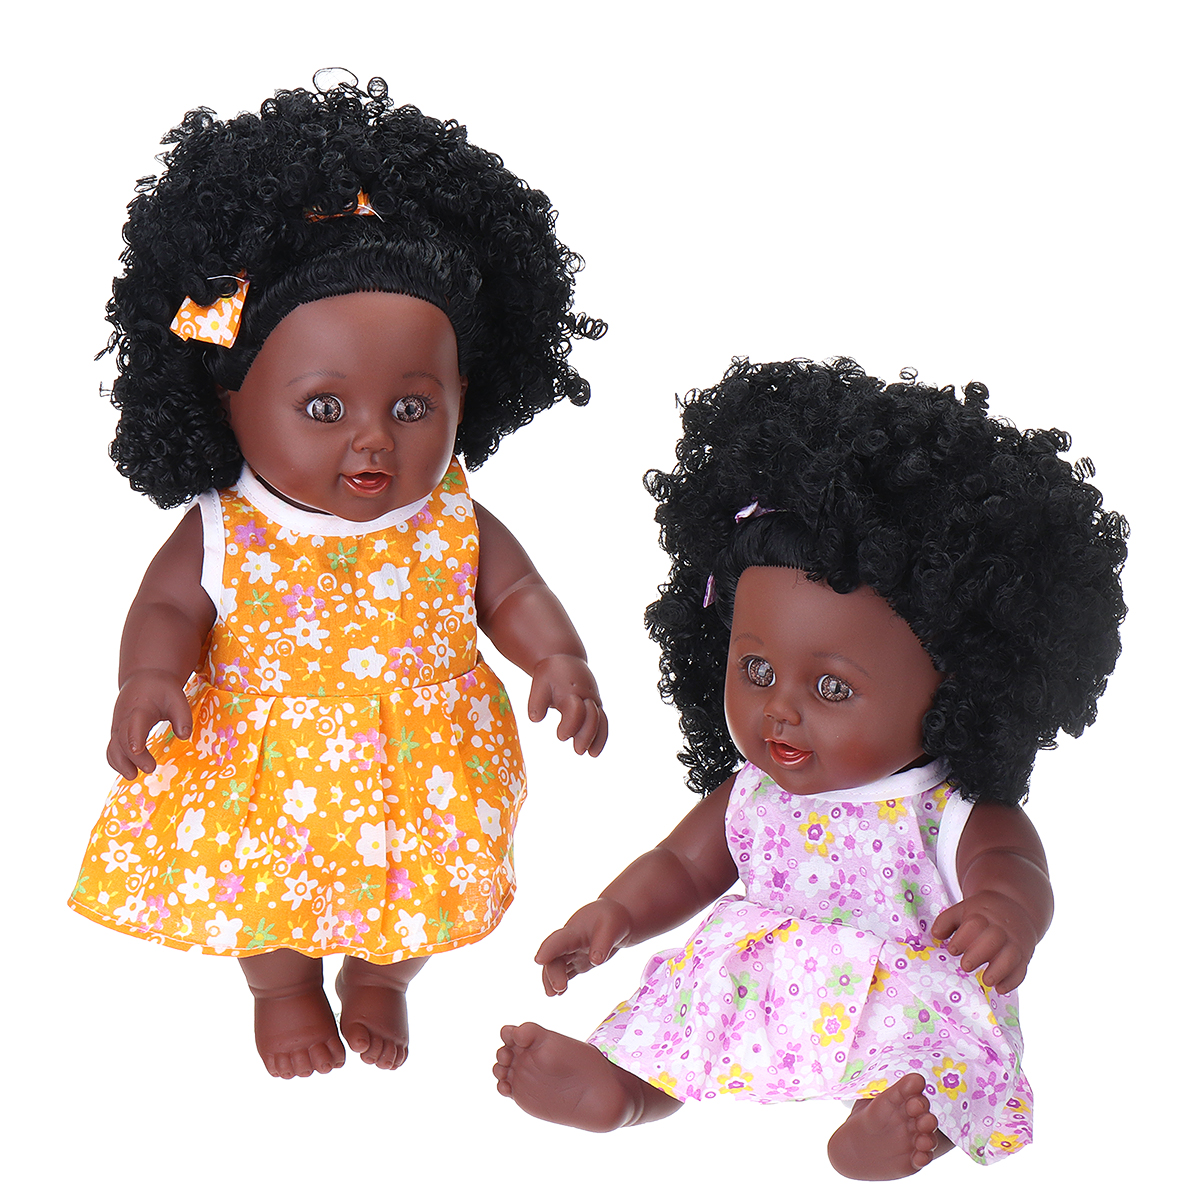 12Inch Simulation Soft Silicone Vinyl PVC Black Baby Fashion Doll Rotate 360° African Girl Perfect Reborn Doll Toy for Birthday Gift - Photo: 2